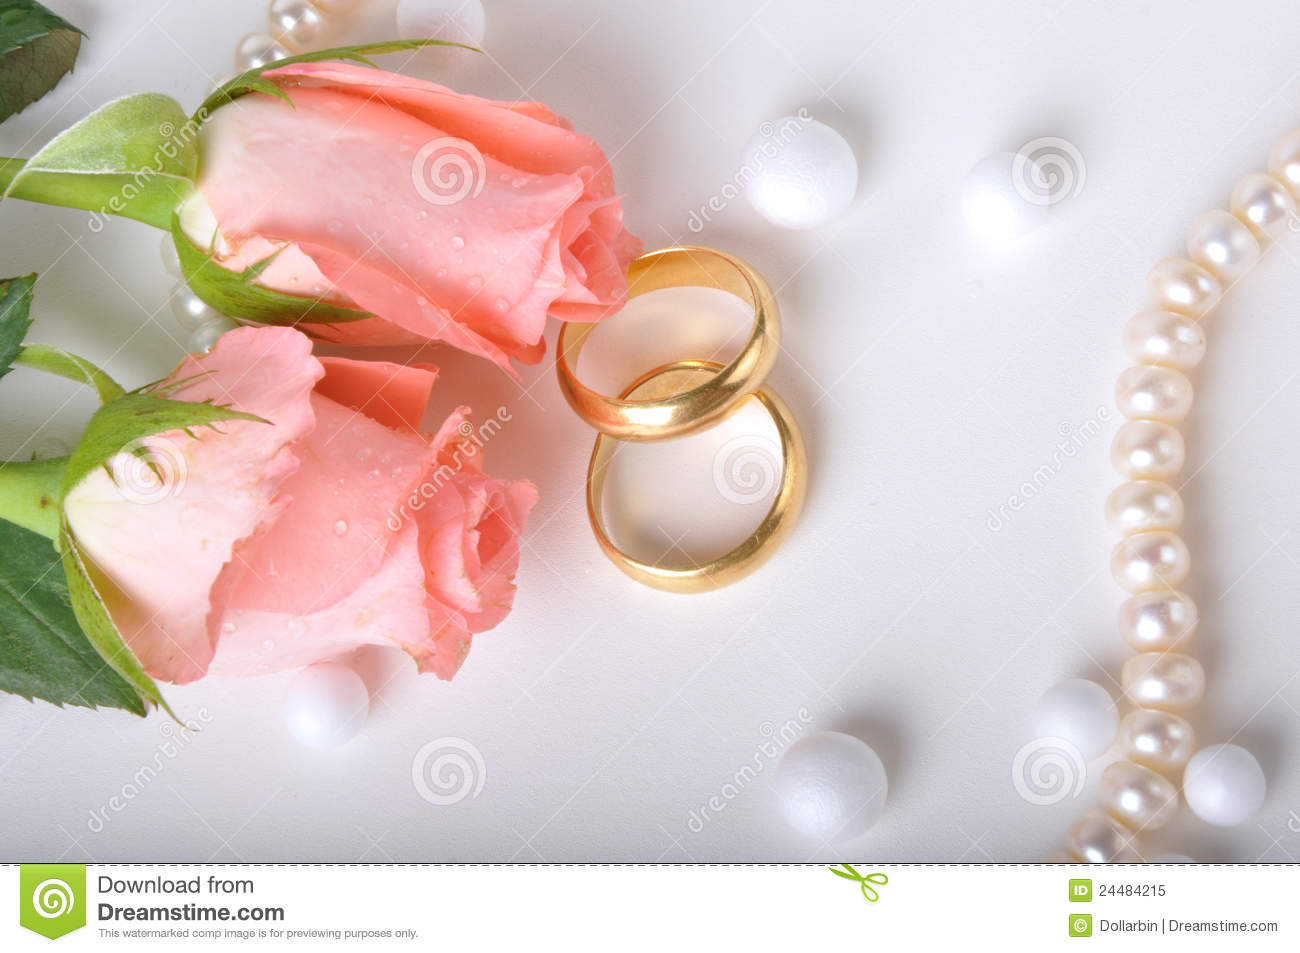 Pakistani Girls Wallpapers Download Wedding Ring Amp Rose Stock Image Image Of Married Gold